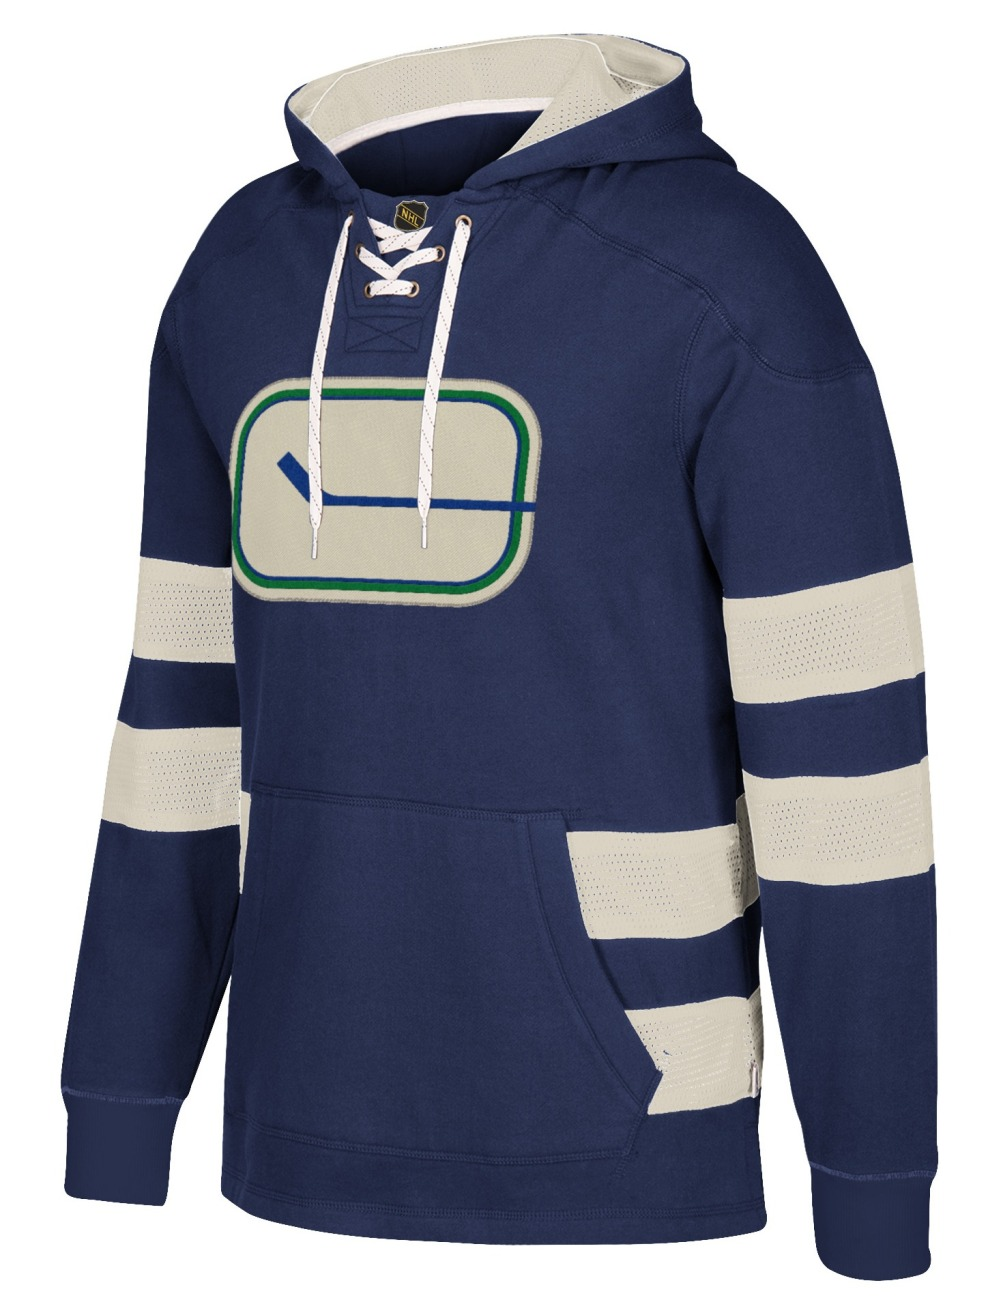 "Vancouver Canucks CCM NHL ""Penalty Kill"" Men's Vintage Jersey Sweatshirt"